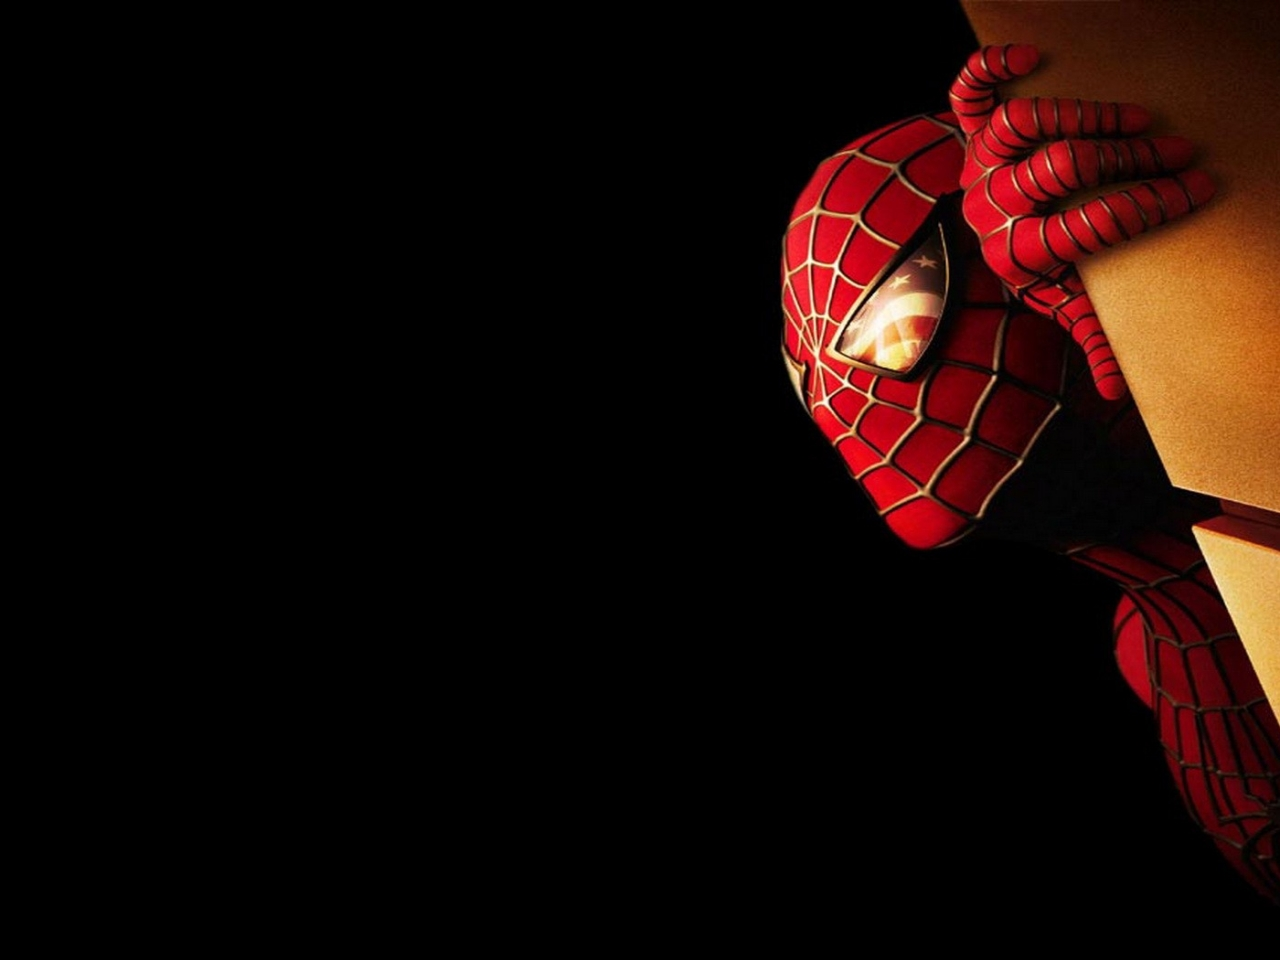 31 spiderman hd wallpaper - photo #10